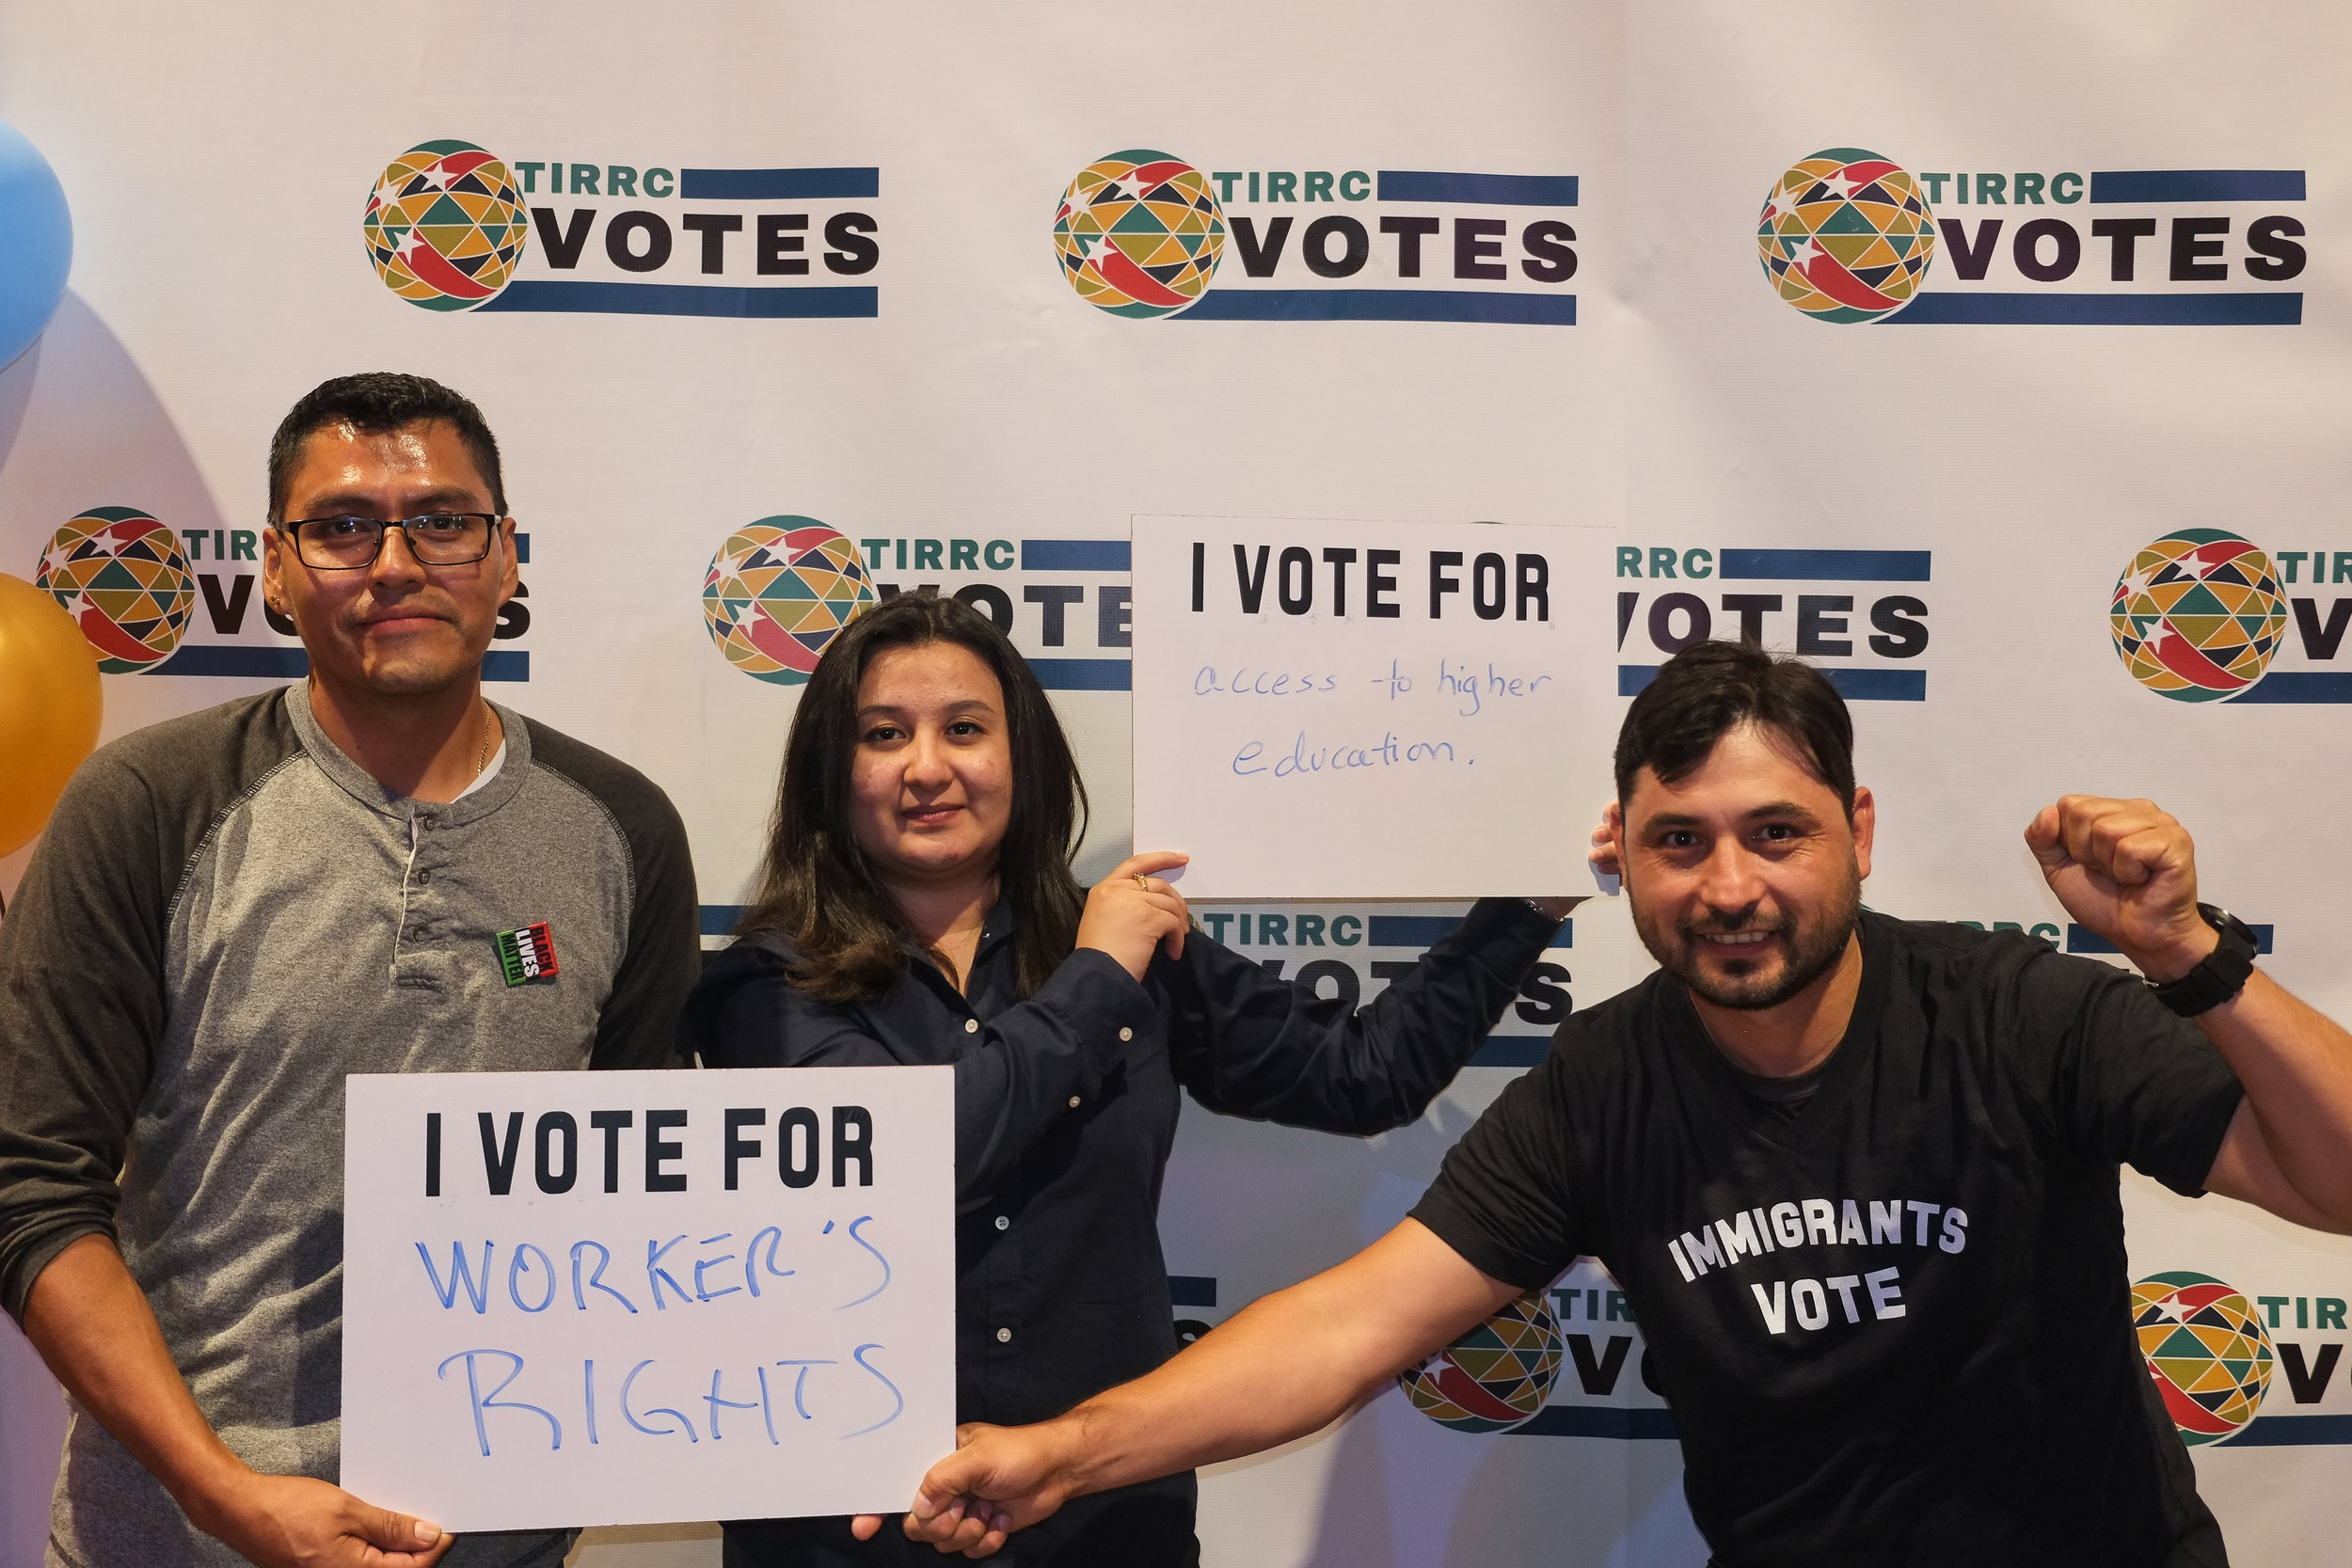 TIRRCVotes-PhotoBooth-63.jpg